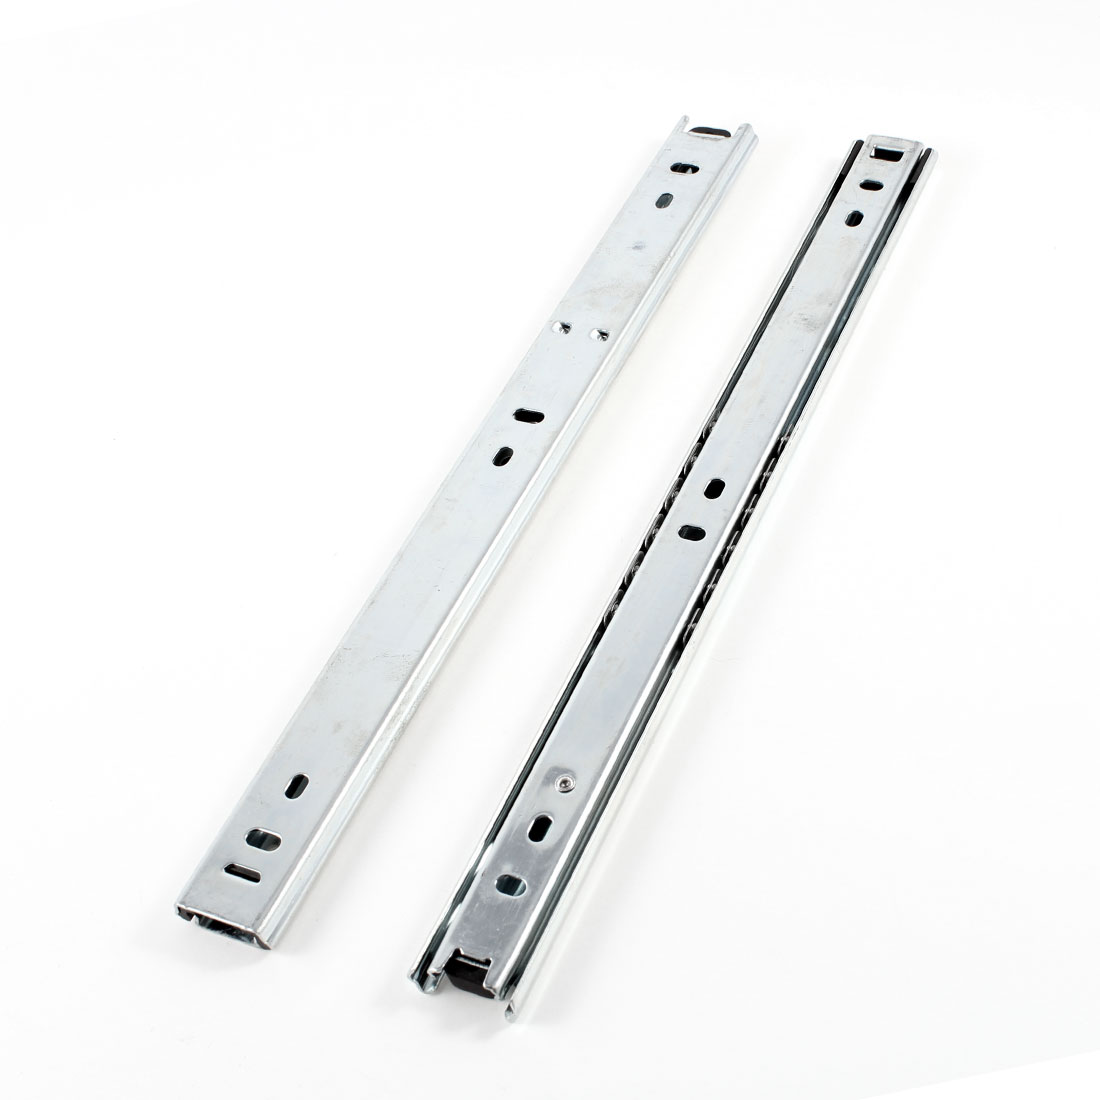 2 Pcs Aluminium Sliding Mount Drawer Guide Rails Silver Tone